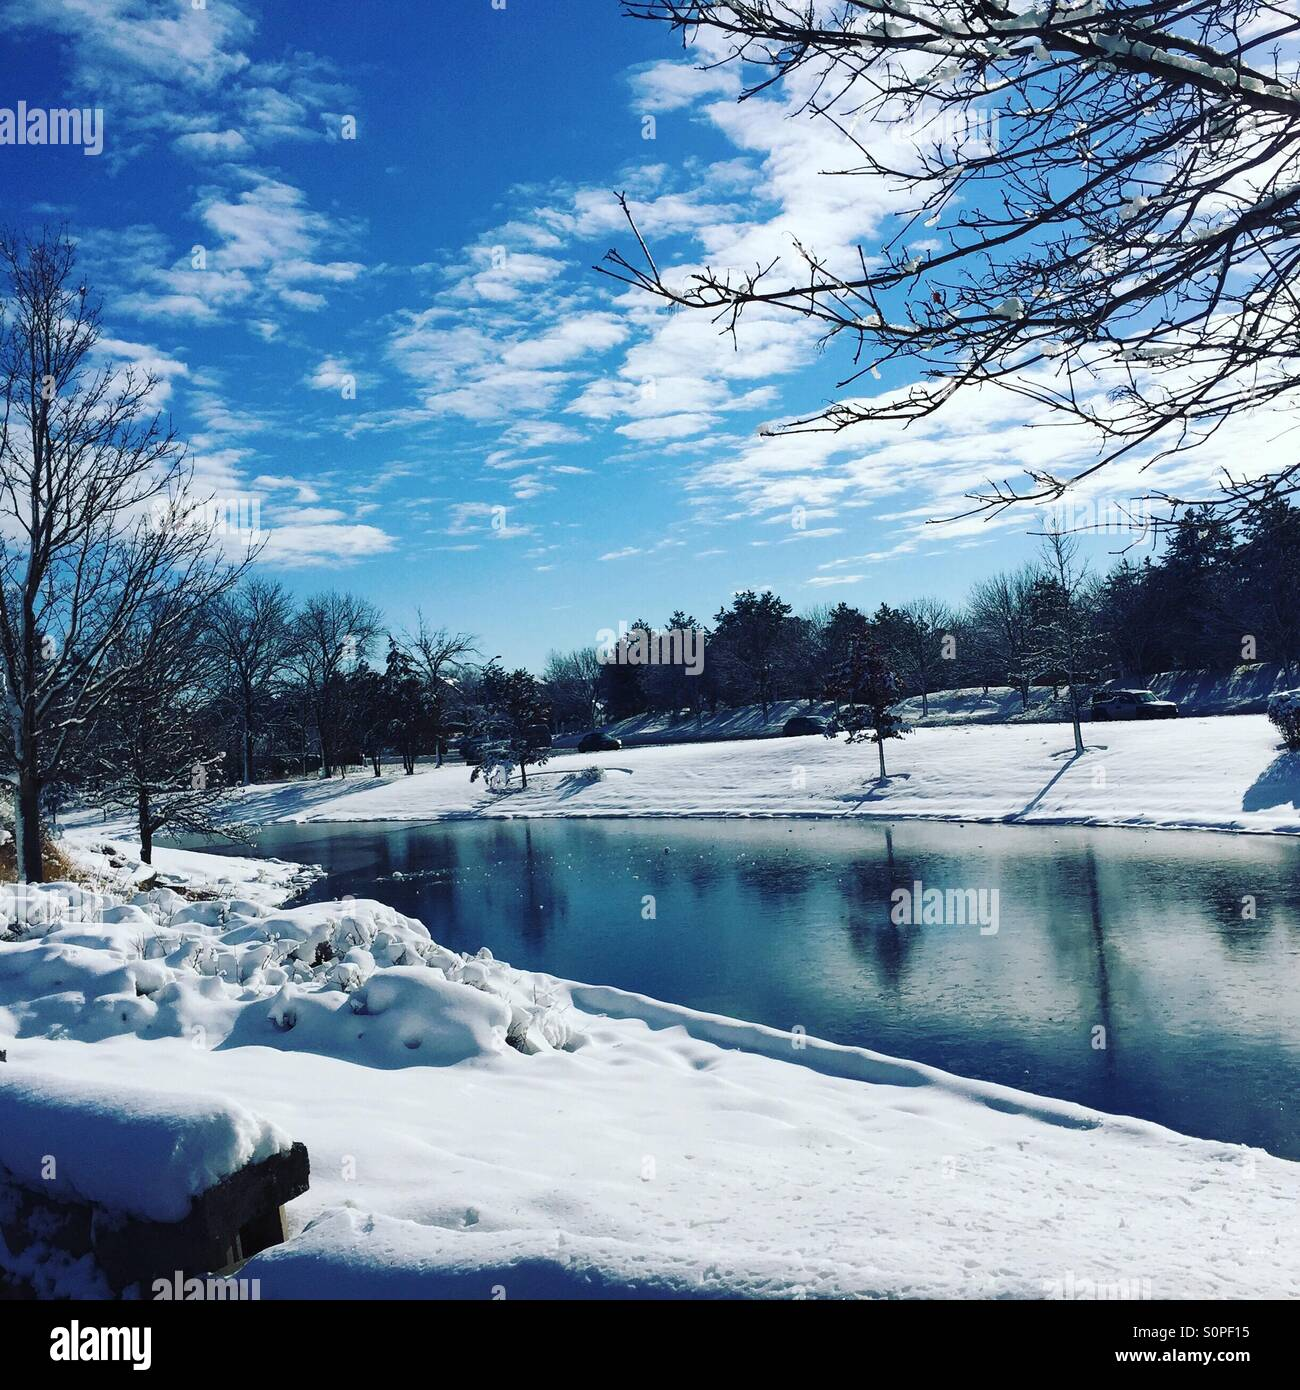 Beautiful lake and snow during winter in Windy City Chicago. - Stock Image